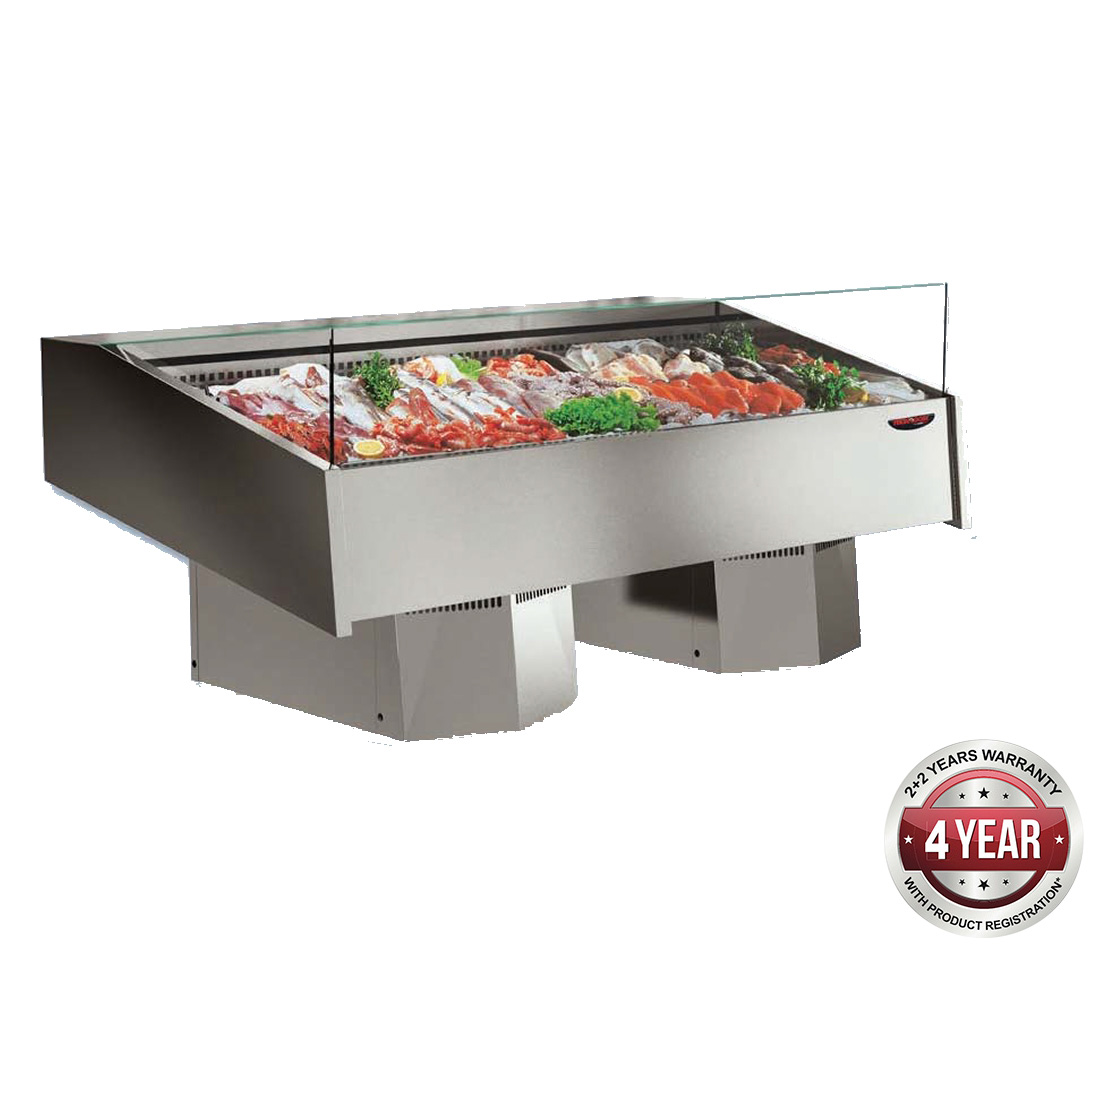 Multiplexable Serve-over Refrigerated Fish Open Display 1540mm - FSG1500